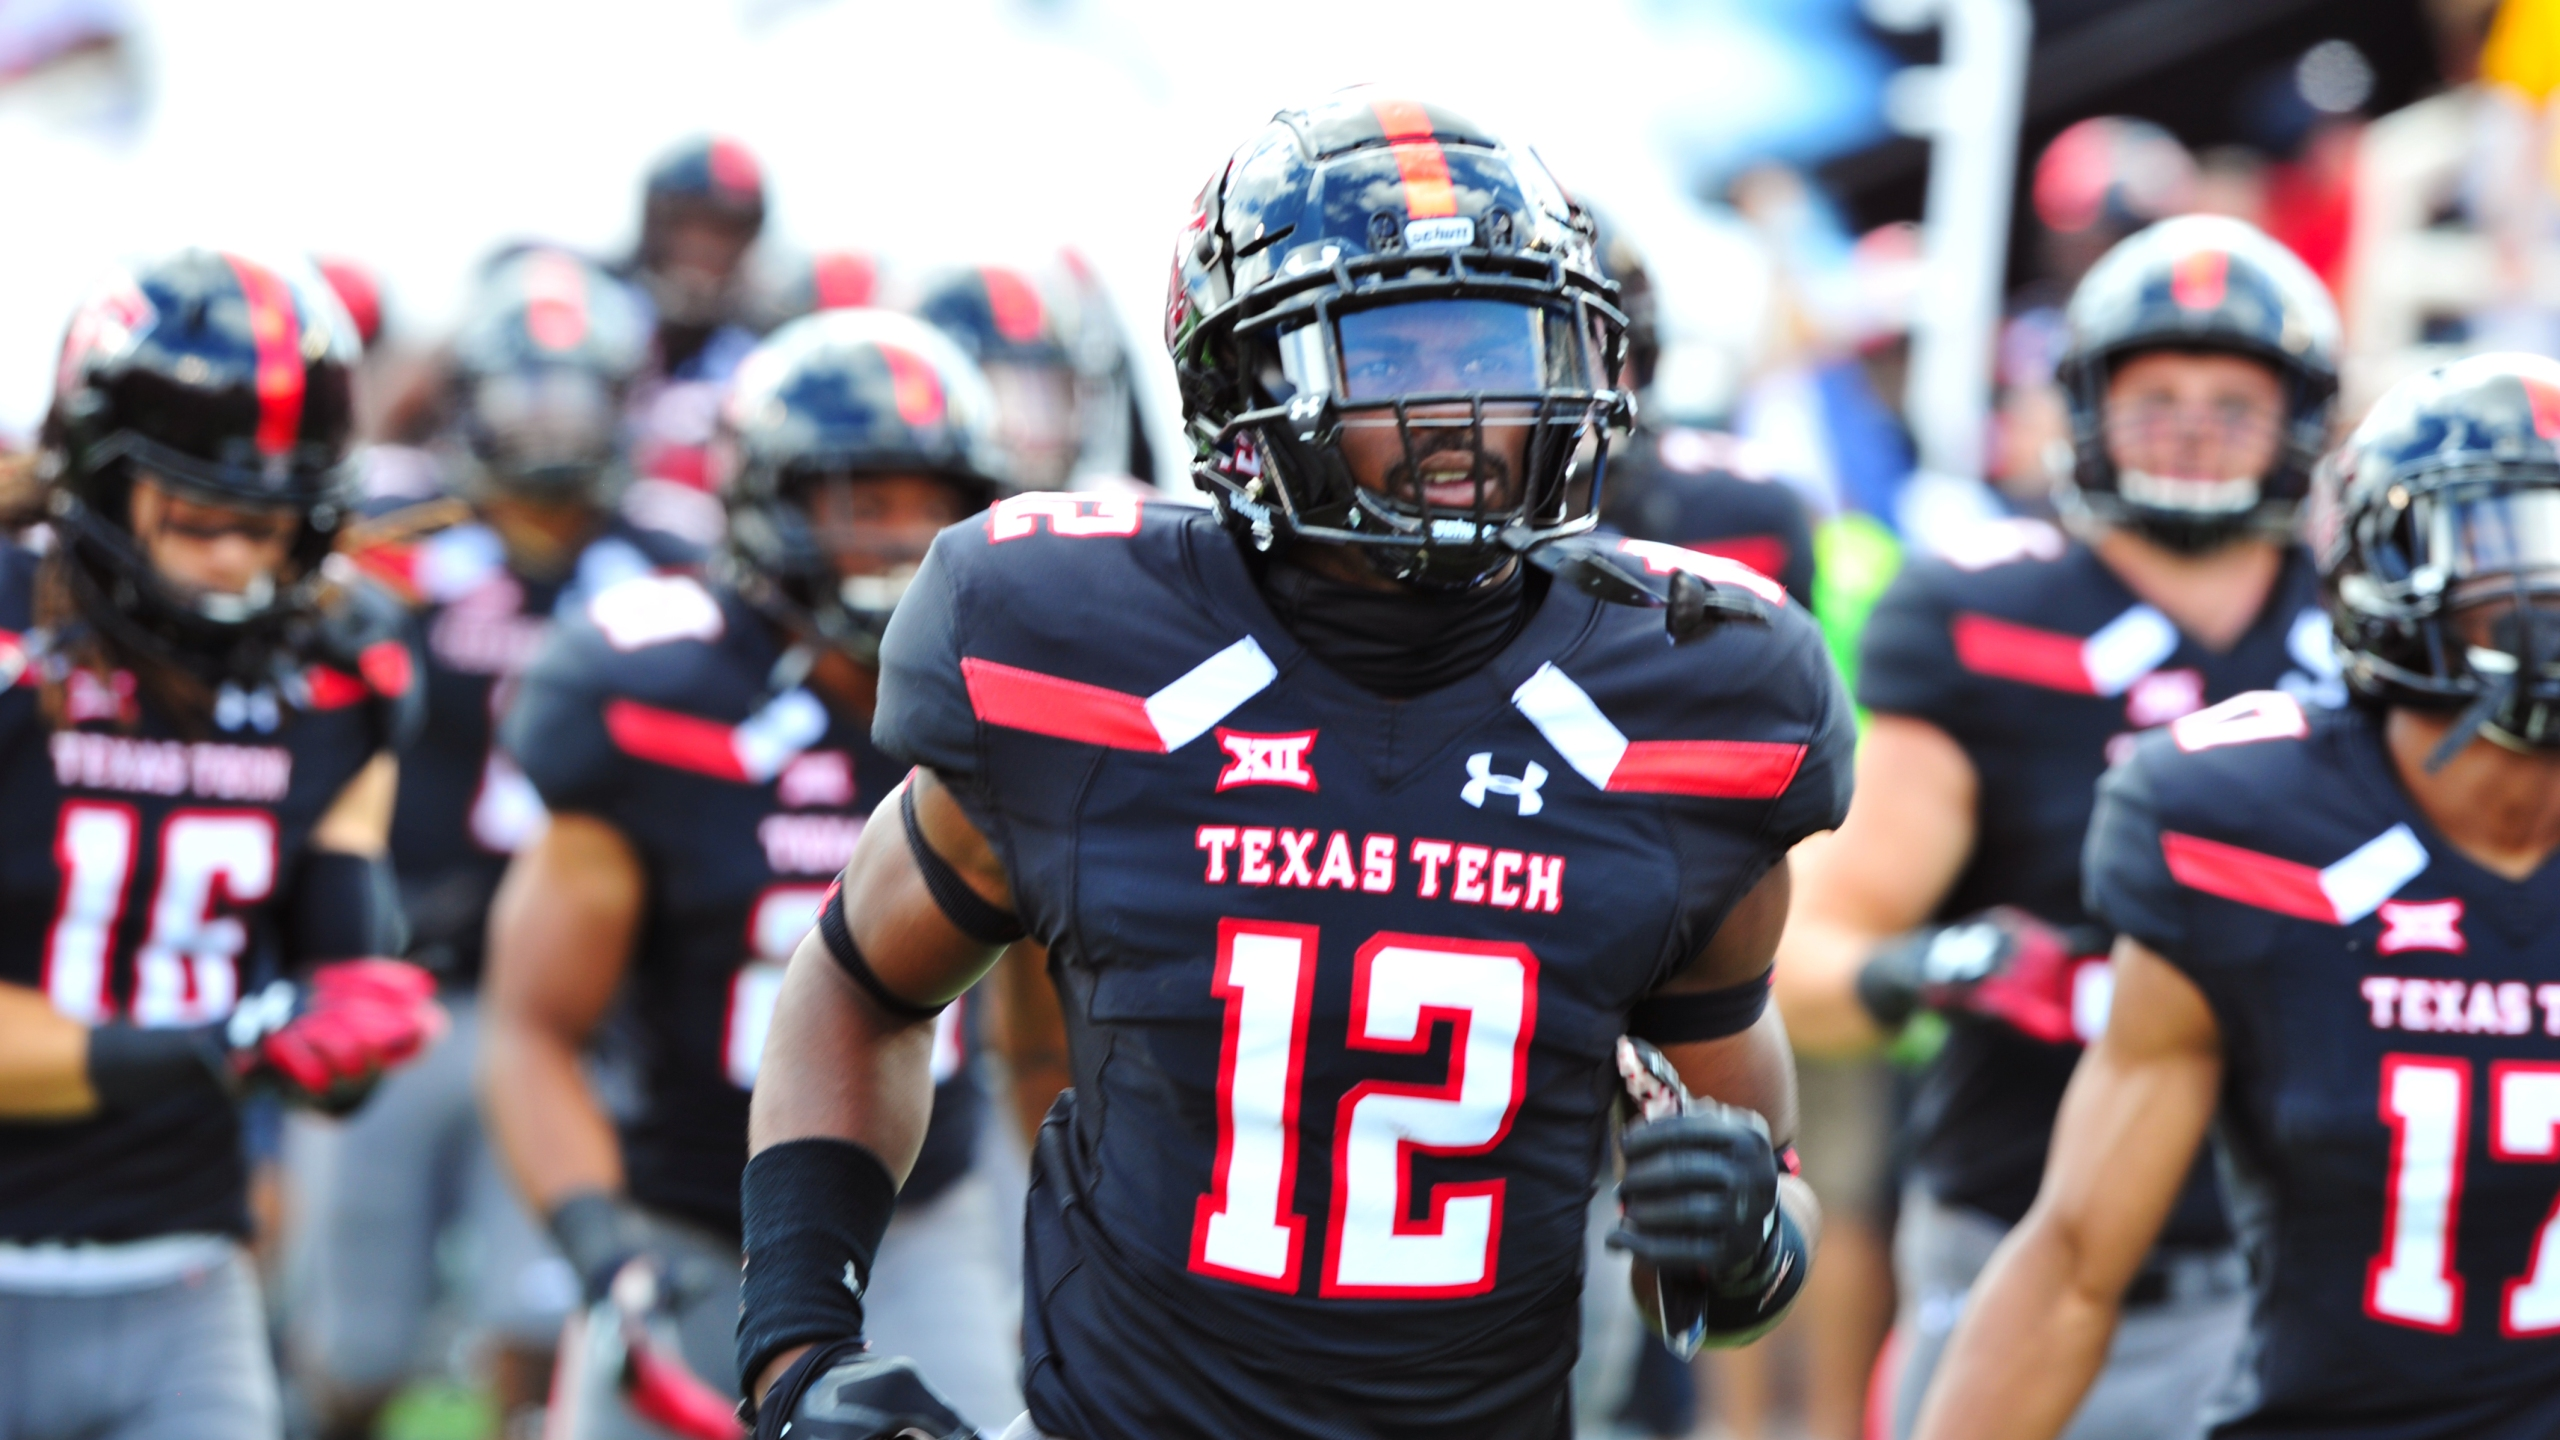 Texas_Tech_Football